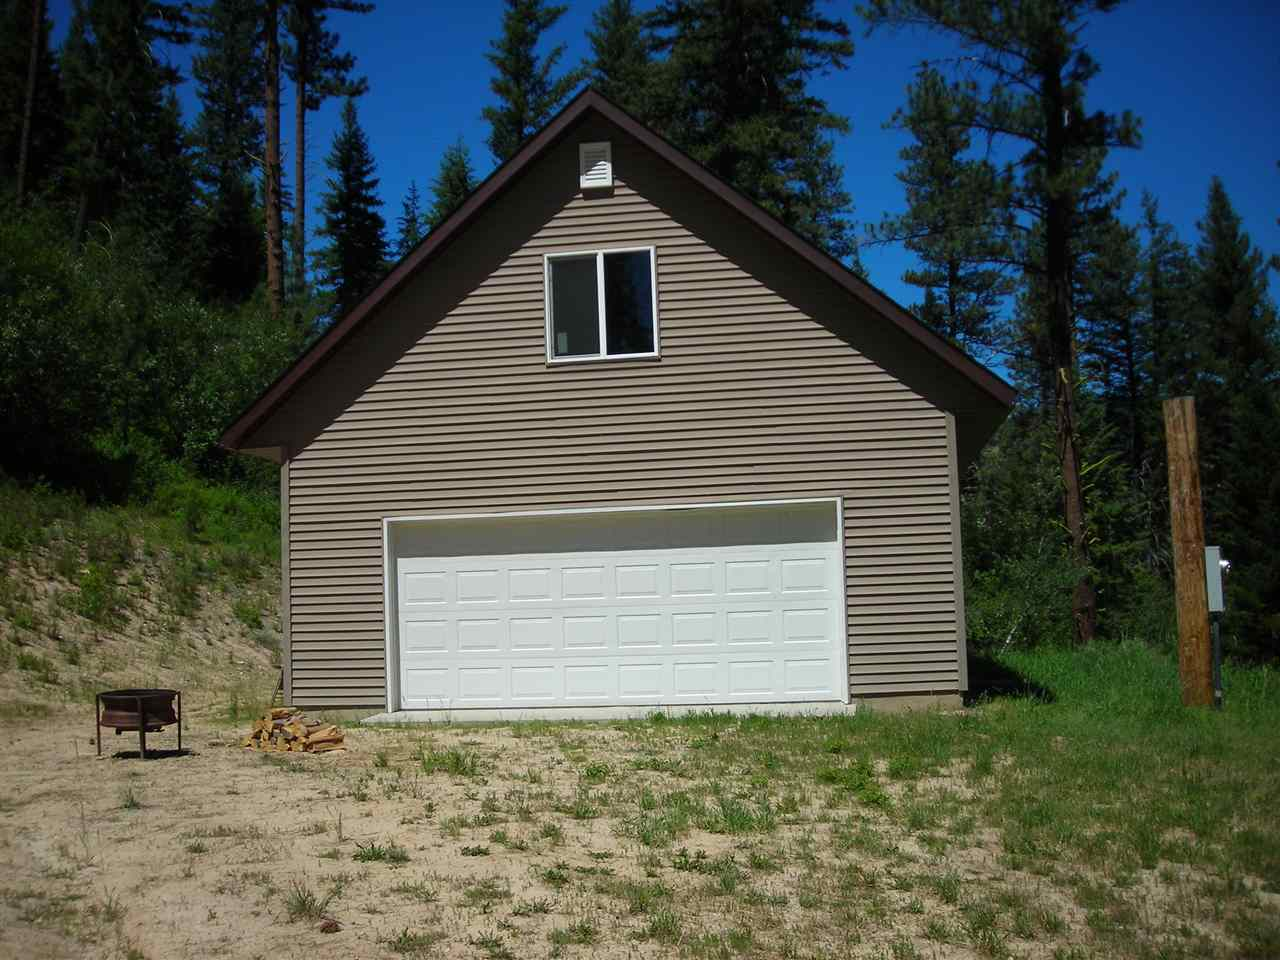 1547 E Pine Creek Rd, Featherville, ID 83647